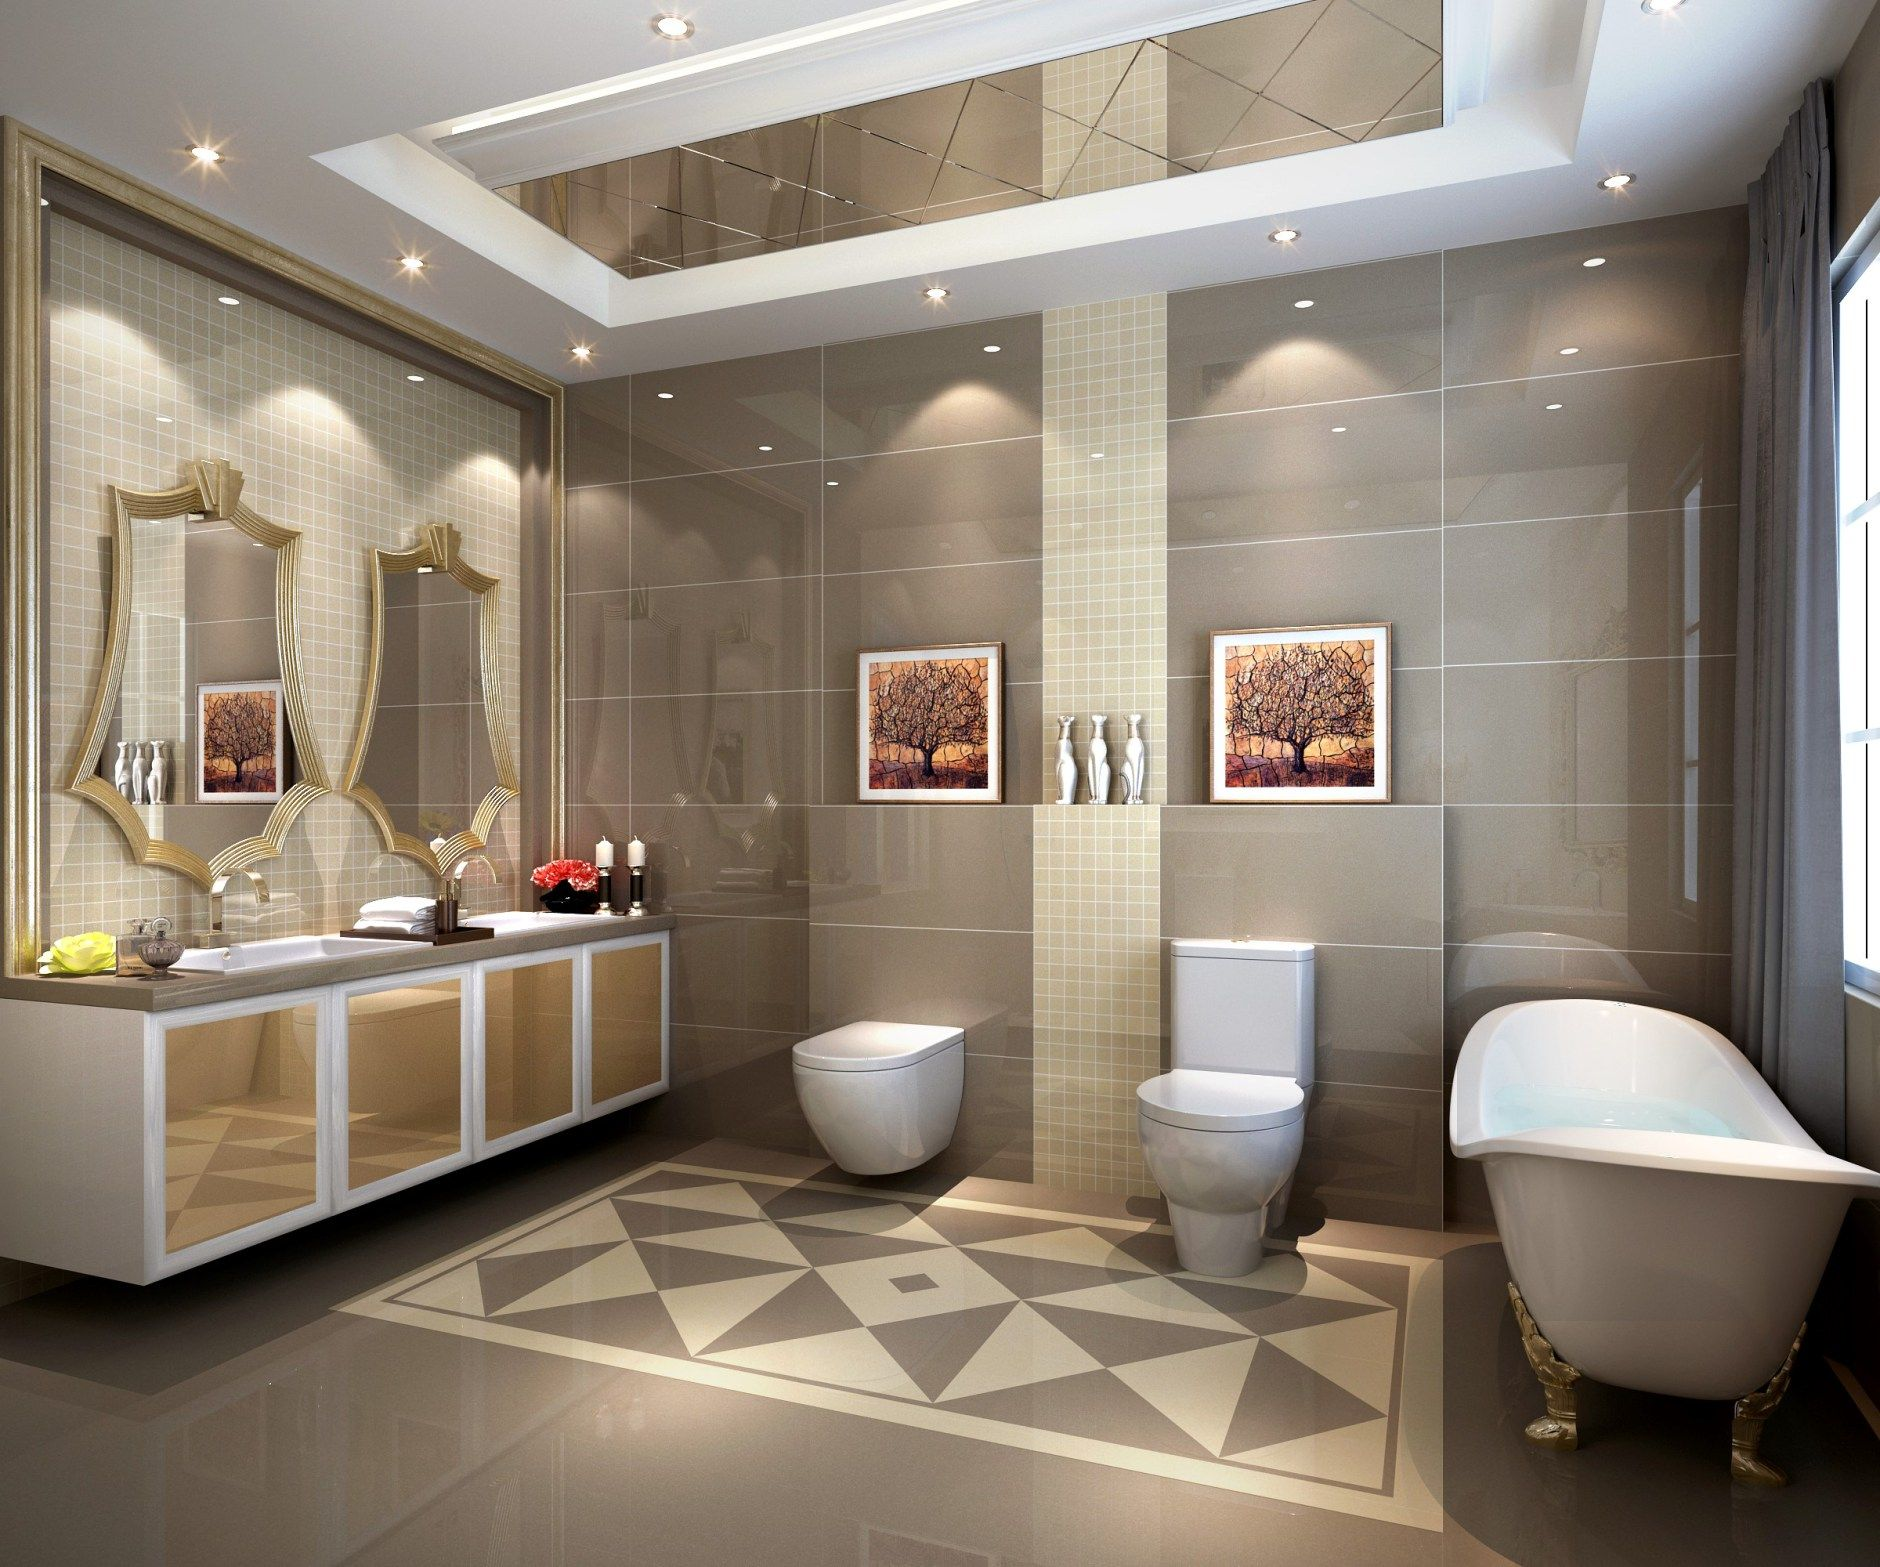 Tile Patterns: How To Create 20+ Trendy Styles